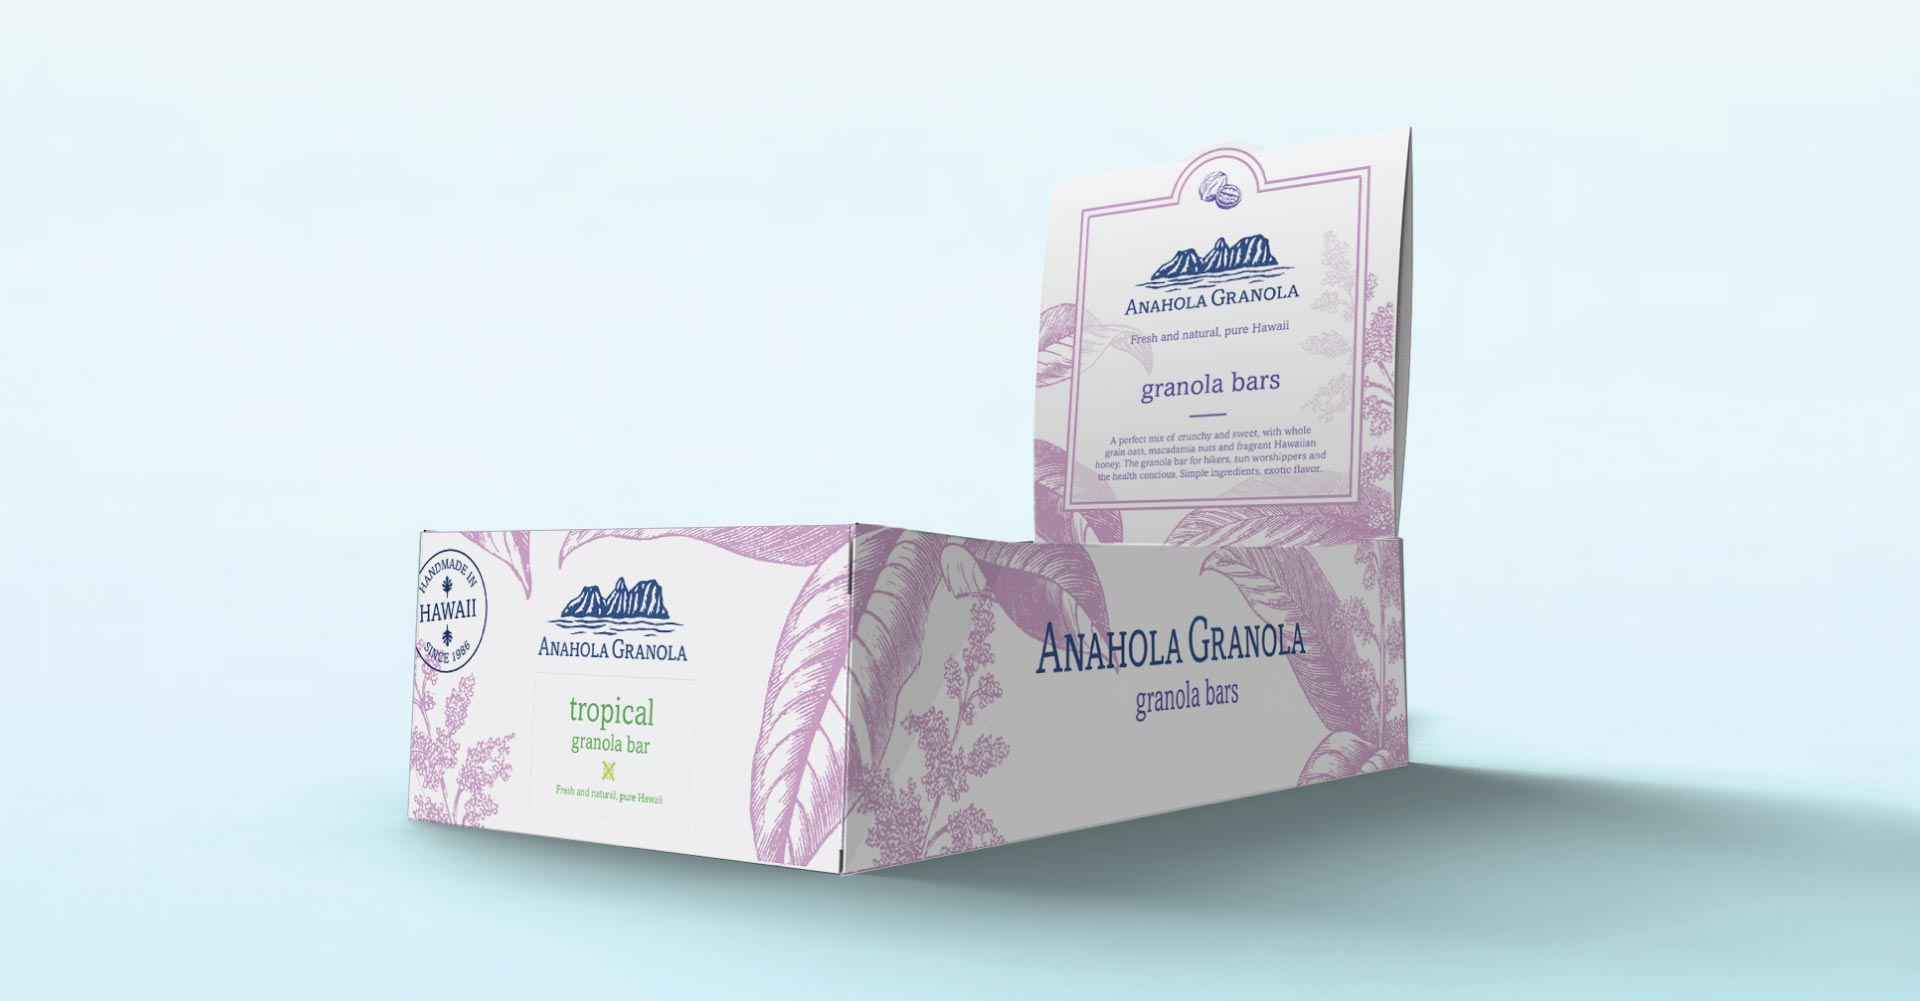 Creative_Retail_Packaging_Branding_Identity_Package_Design_AnaholaGranola_13.jpg